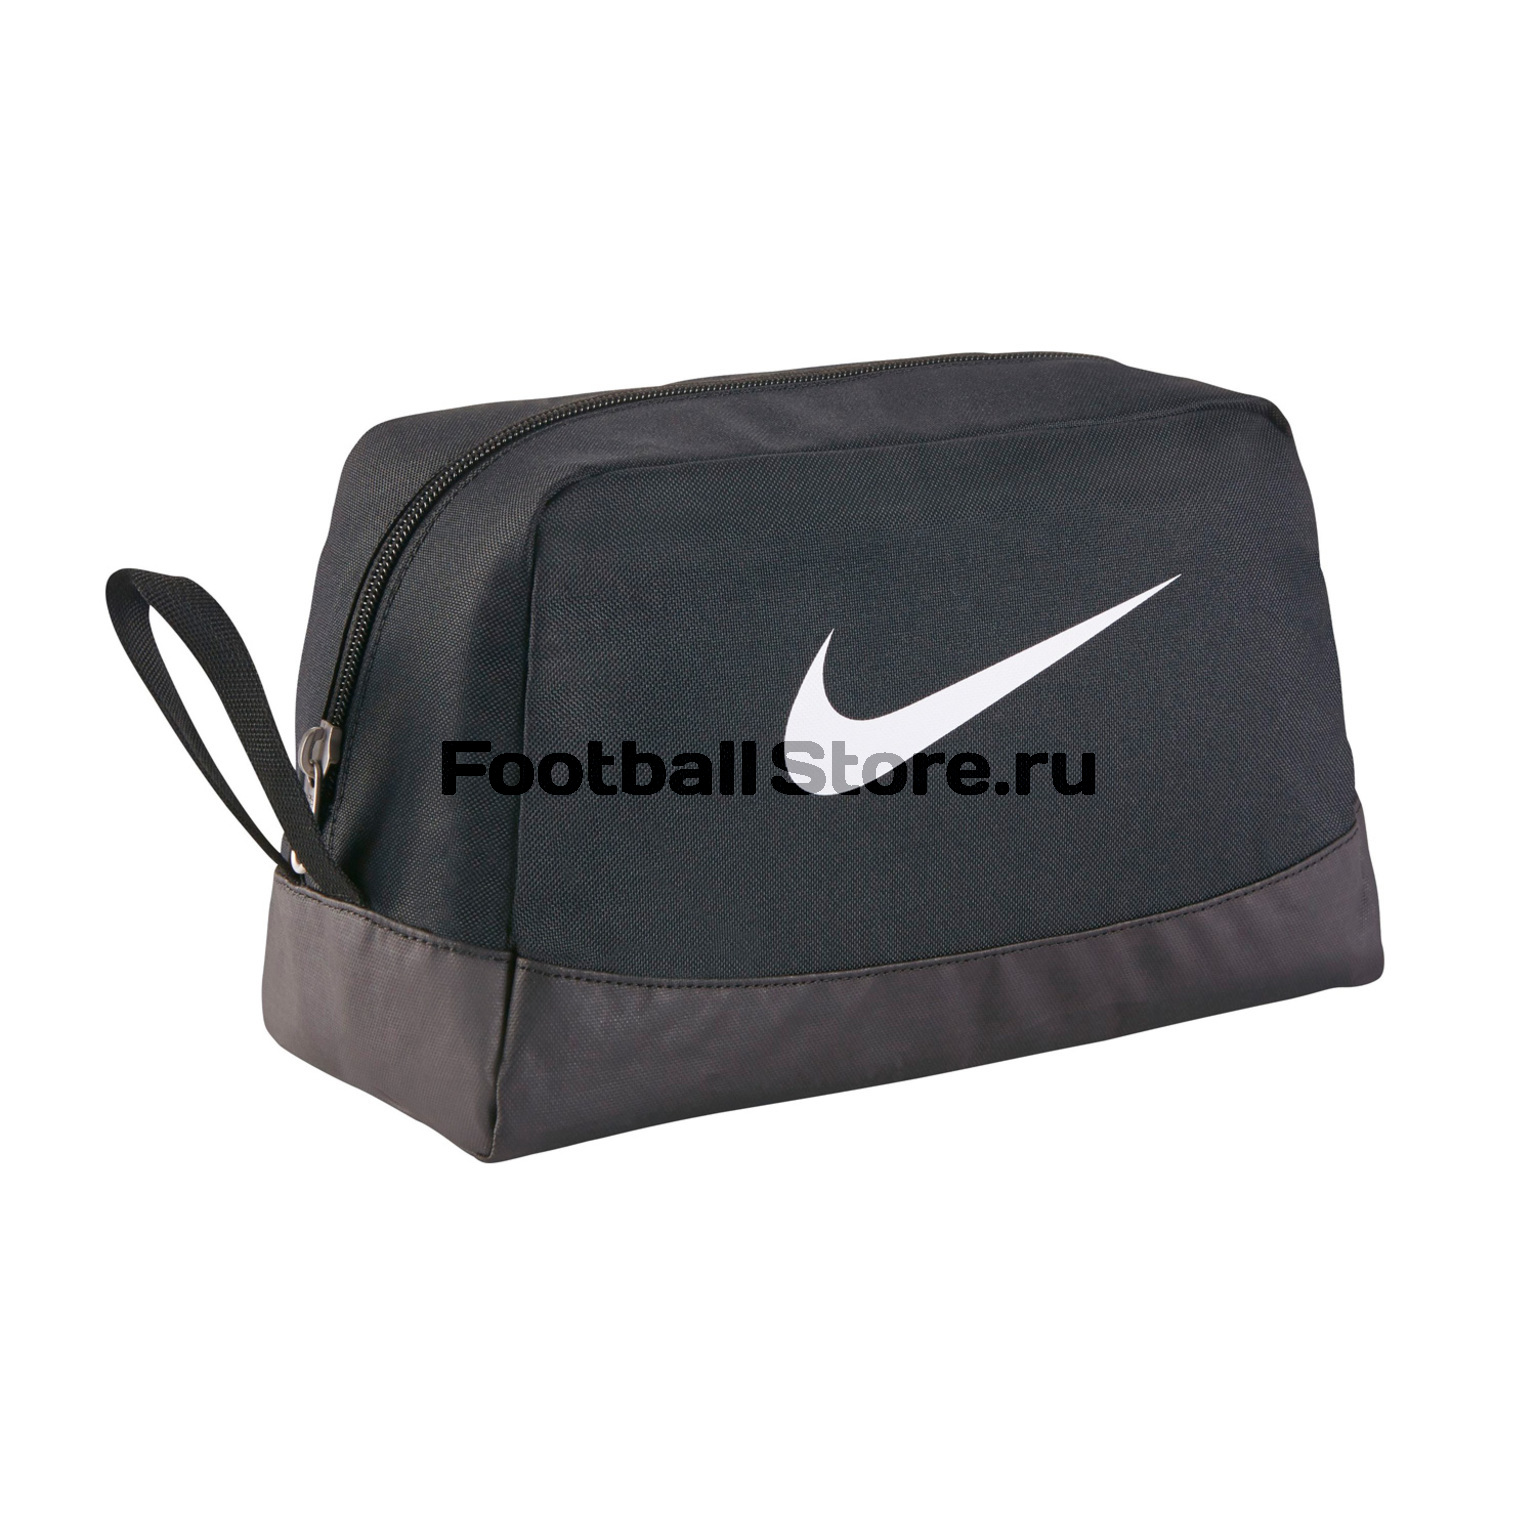 Сумки/Рюкзаки Nike Сумка Nike Club Team SWSH Toiletry BA5198-010